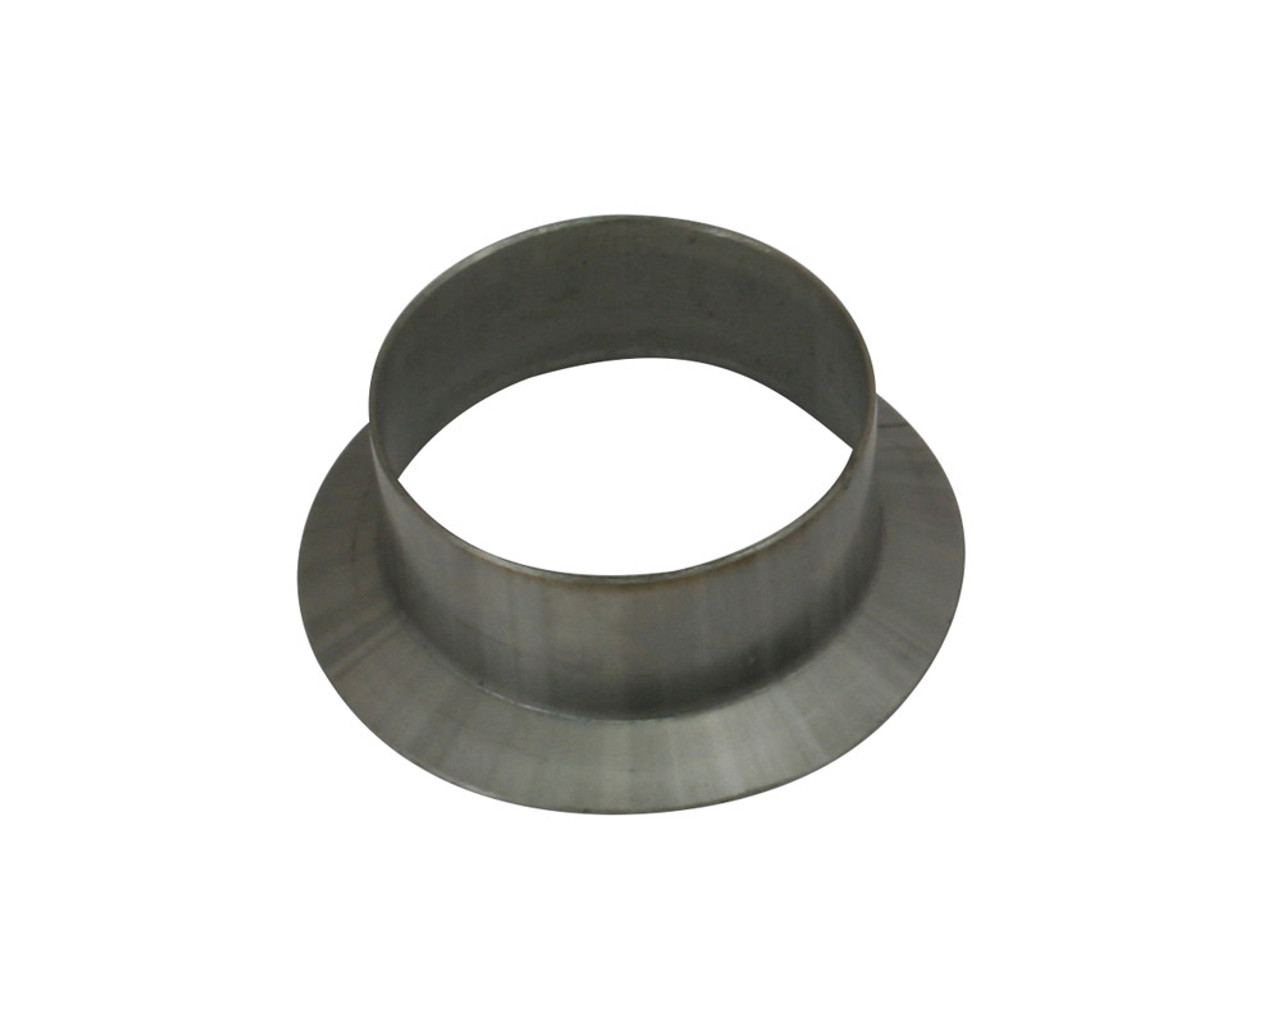 """4.21"""" Marmon V-Band Turbine Outlet Flange for Borg Warner S200 and S300 to 3"""" Tube"""